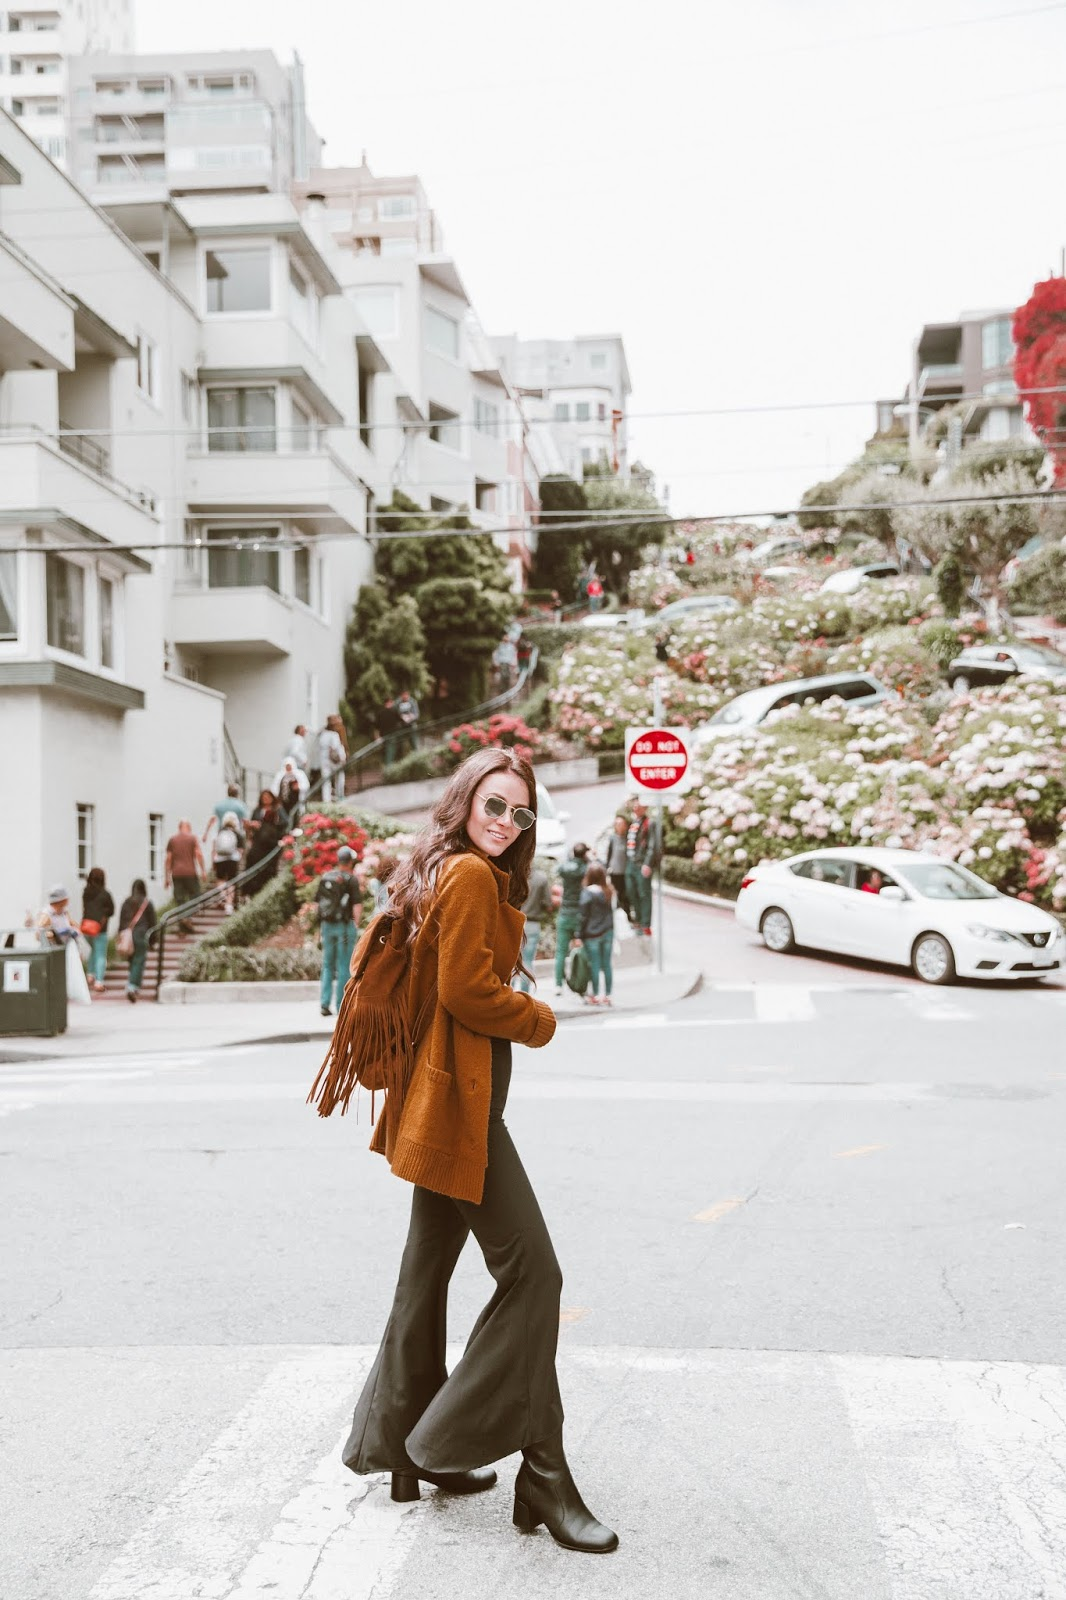 shelly stuckman, ArizonaGirl.com, San Francisco, travel blog, fashion blogger, Lombard Street